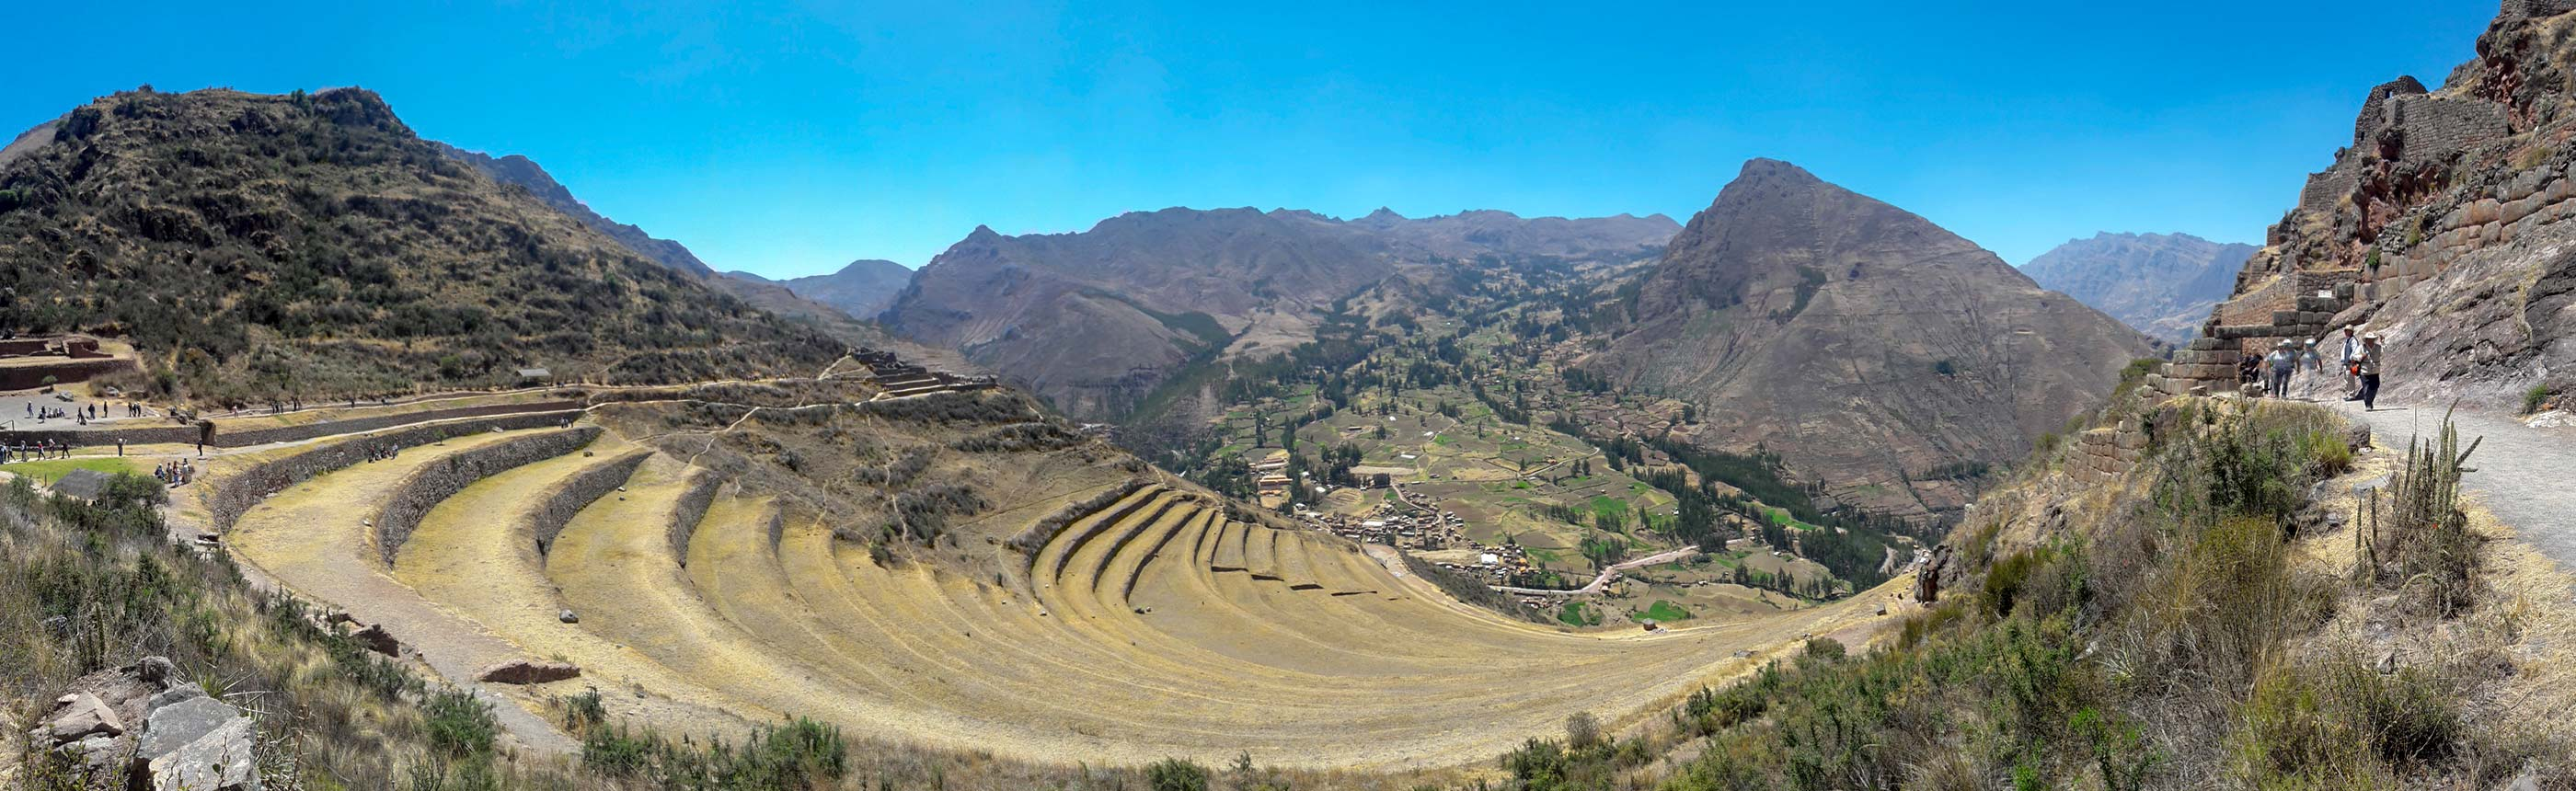 Visiting Pisac ruins with spectacular panoramic view